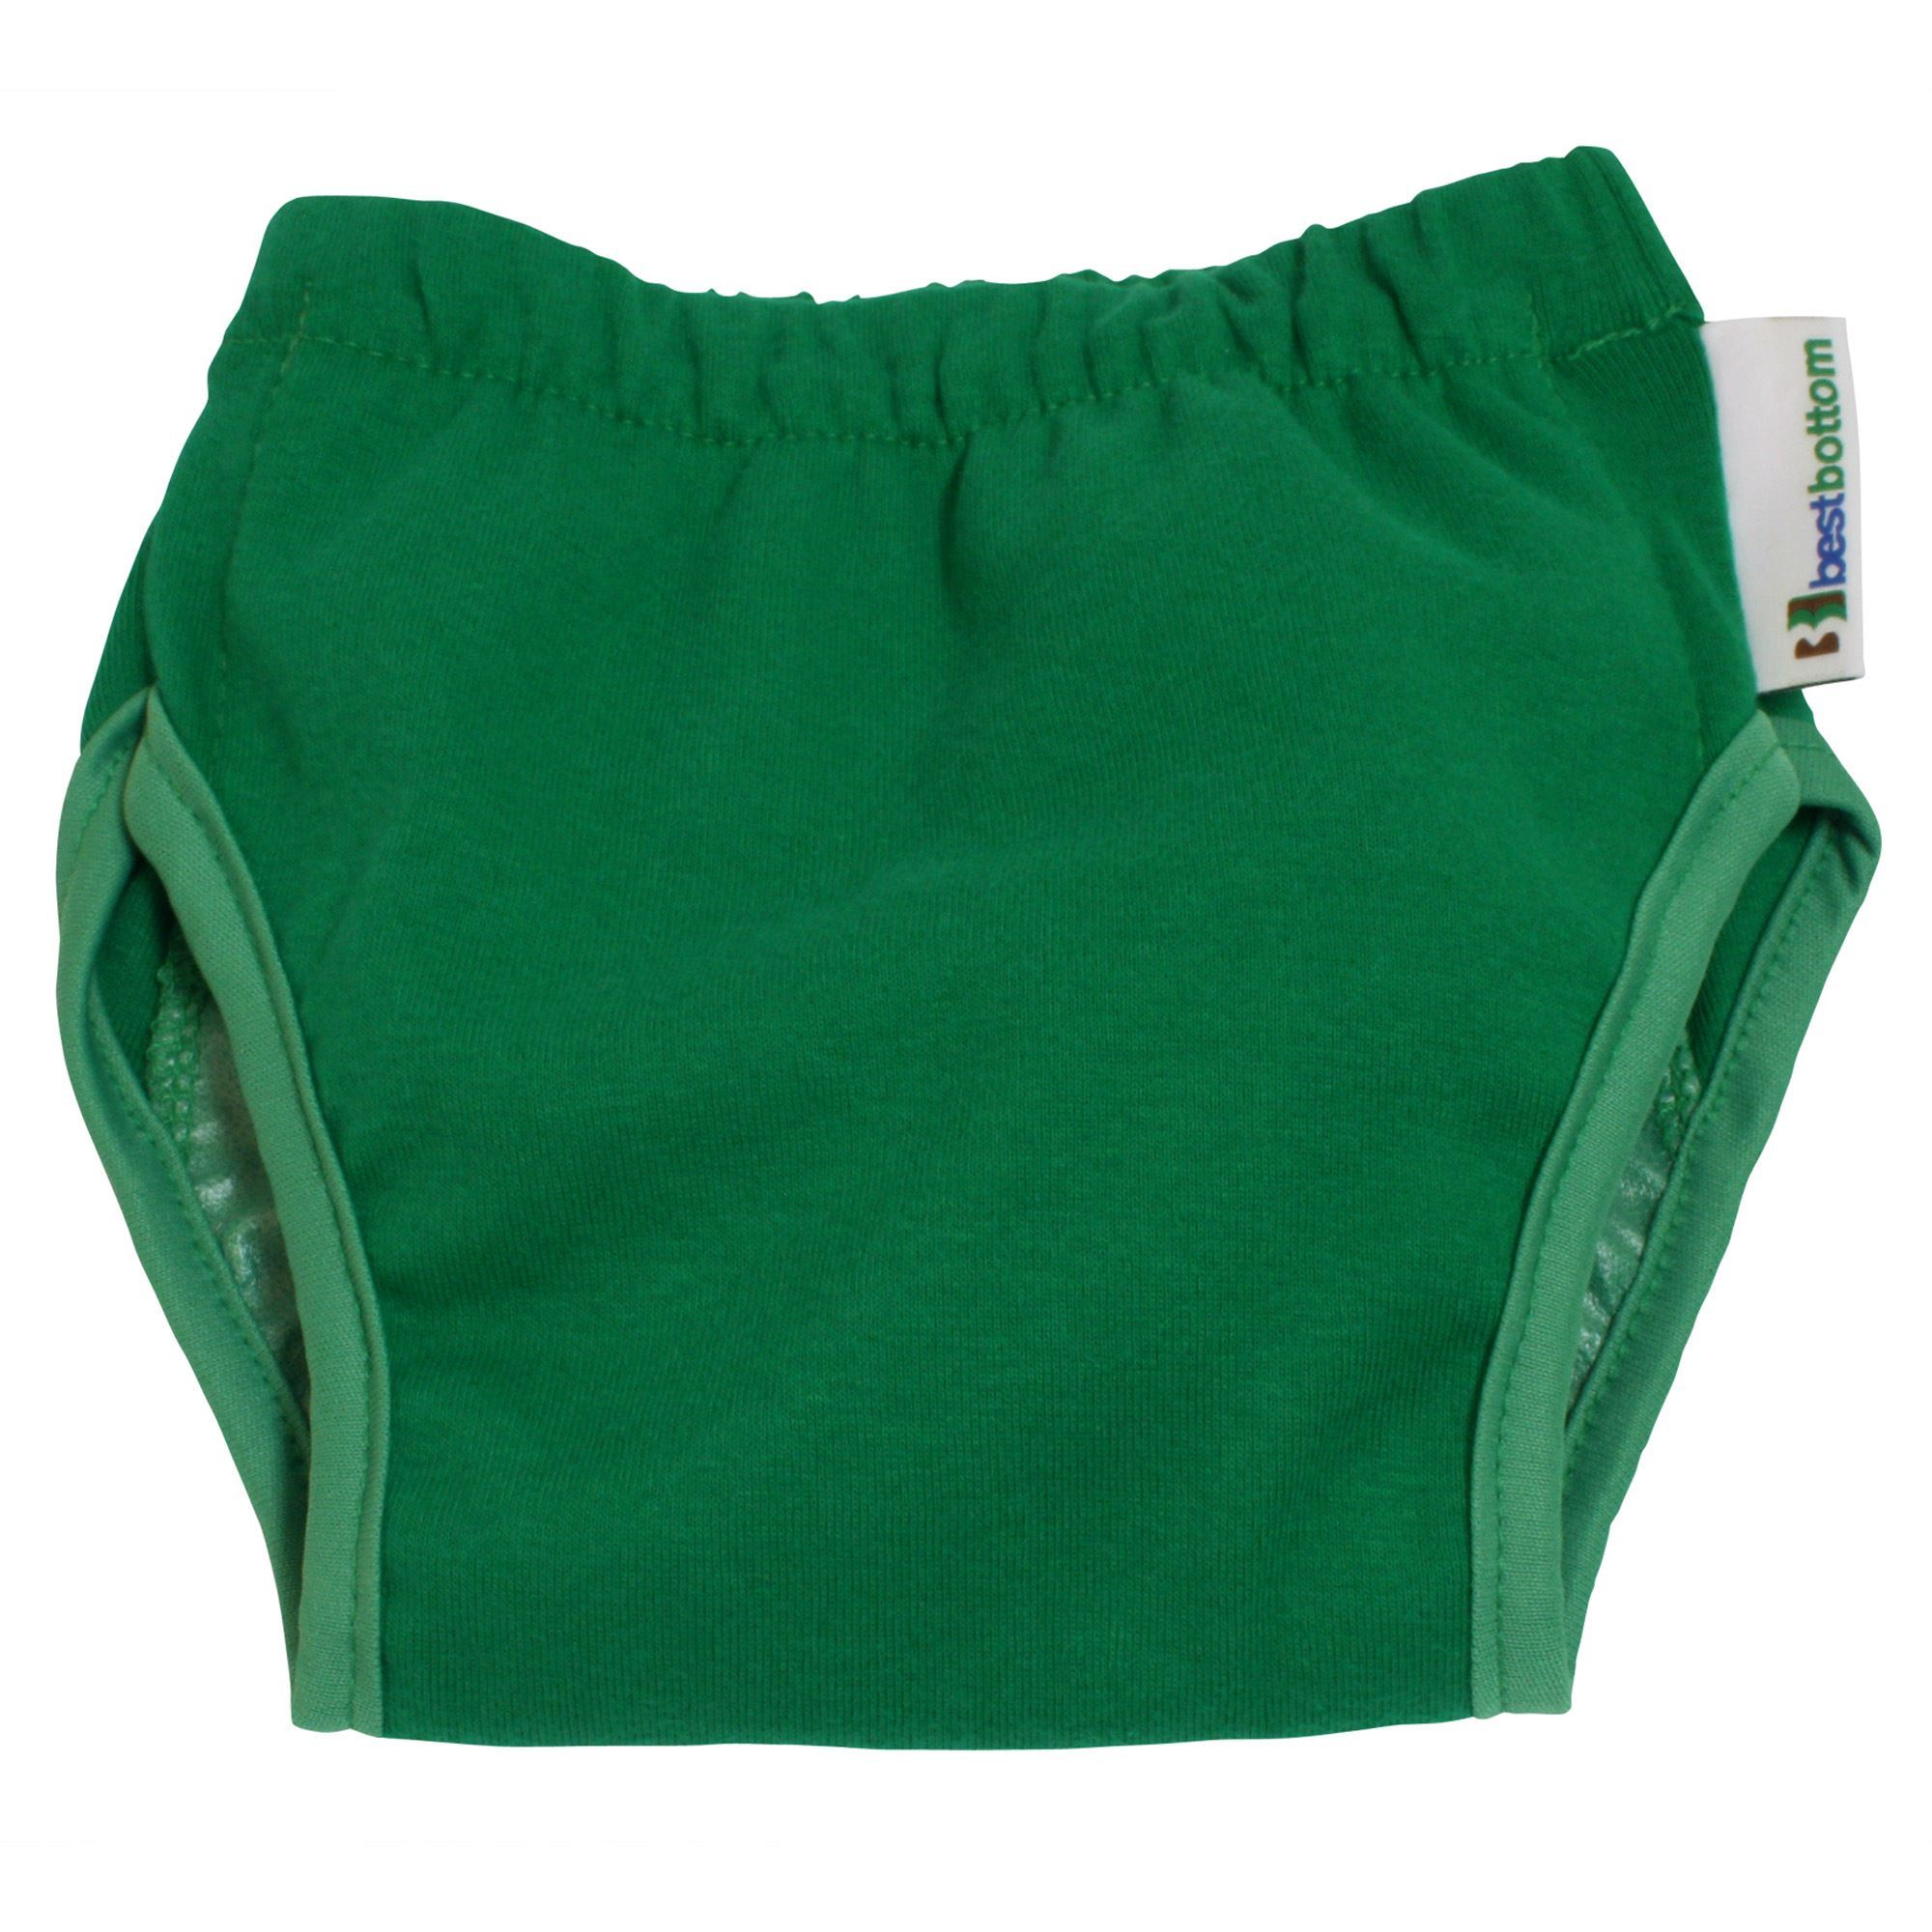 Best Bottom Training Pants, Pistachio, Medium